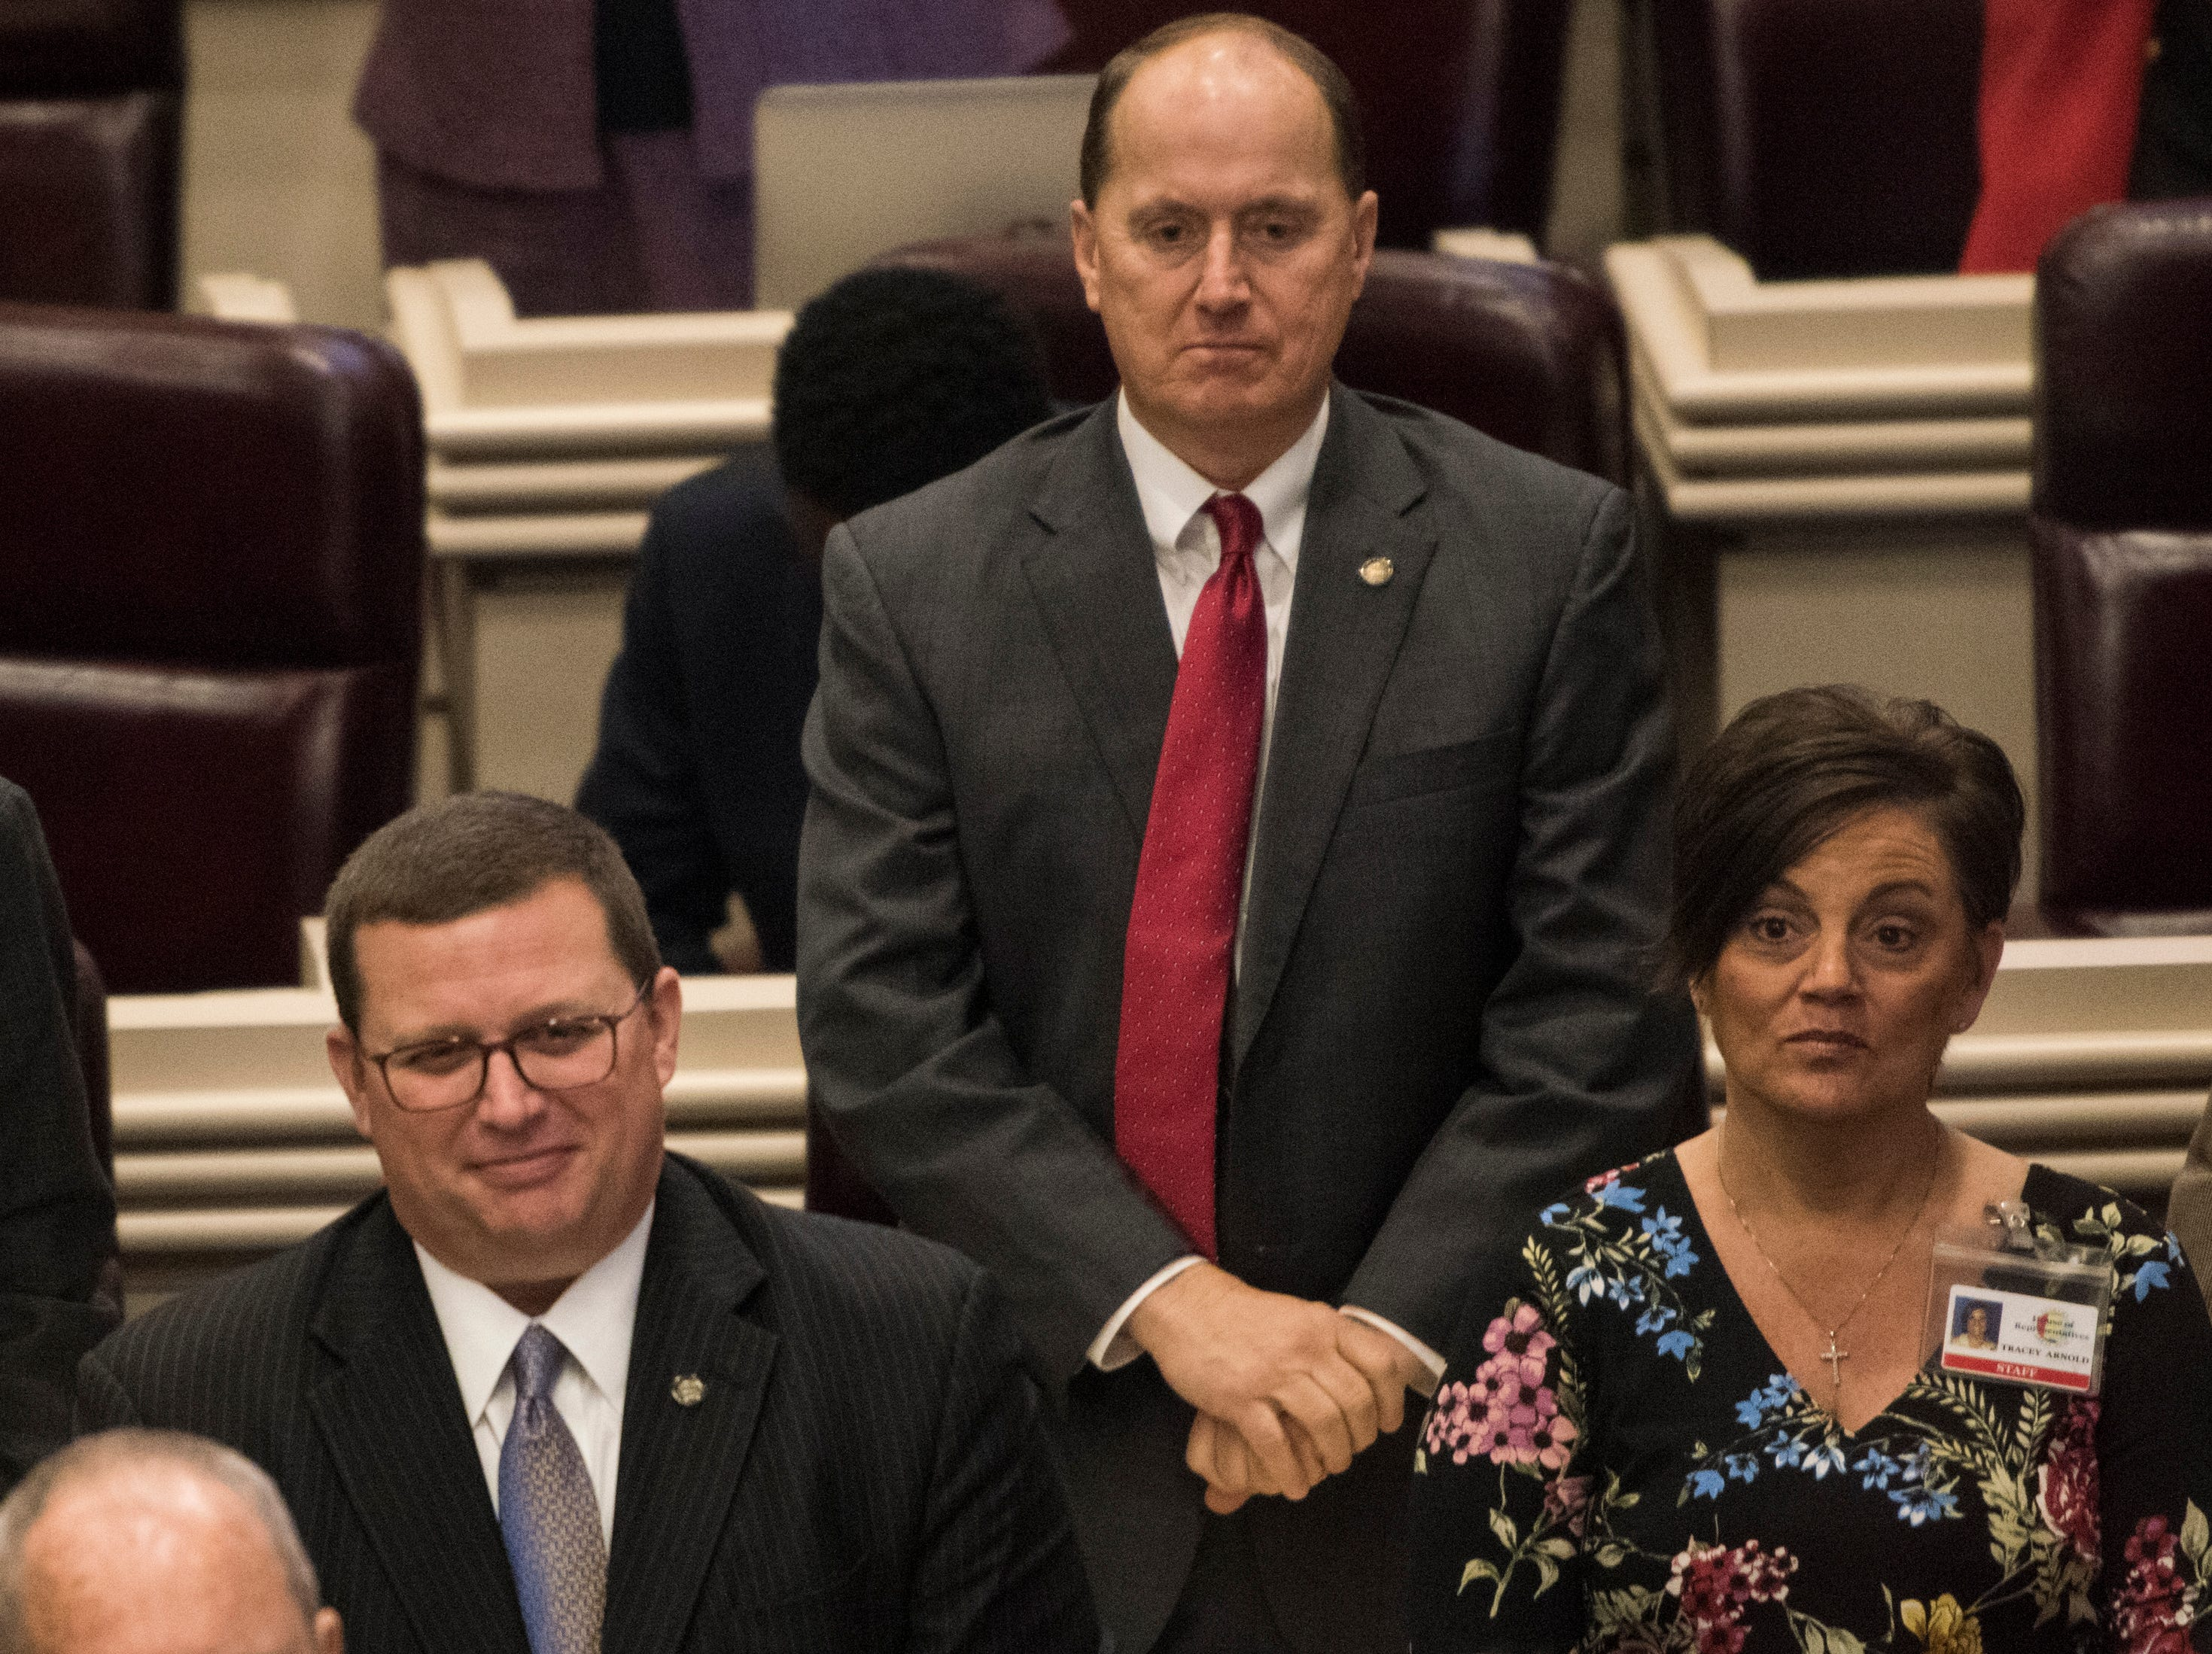 Rep. Reed Ingram during the 2019 Alabama Legislature's organizational session at the Alabama State House in Montgomery, Ala., on Tuesday, Jan. 8, 2019.